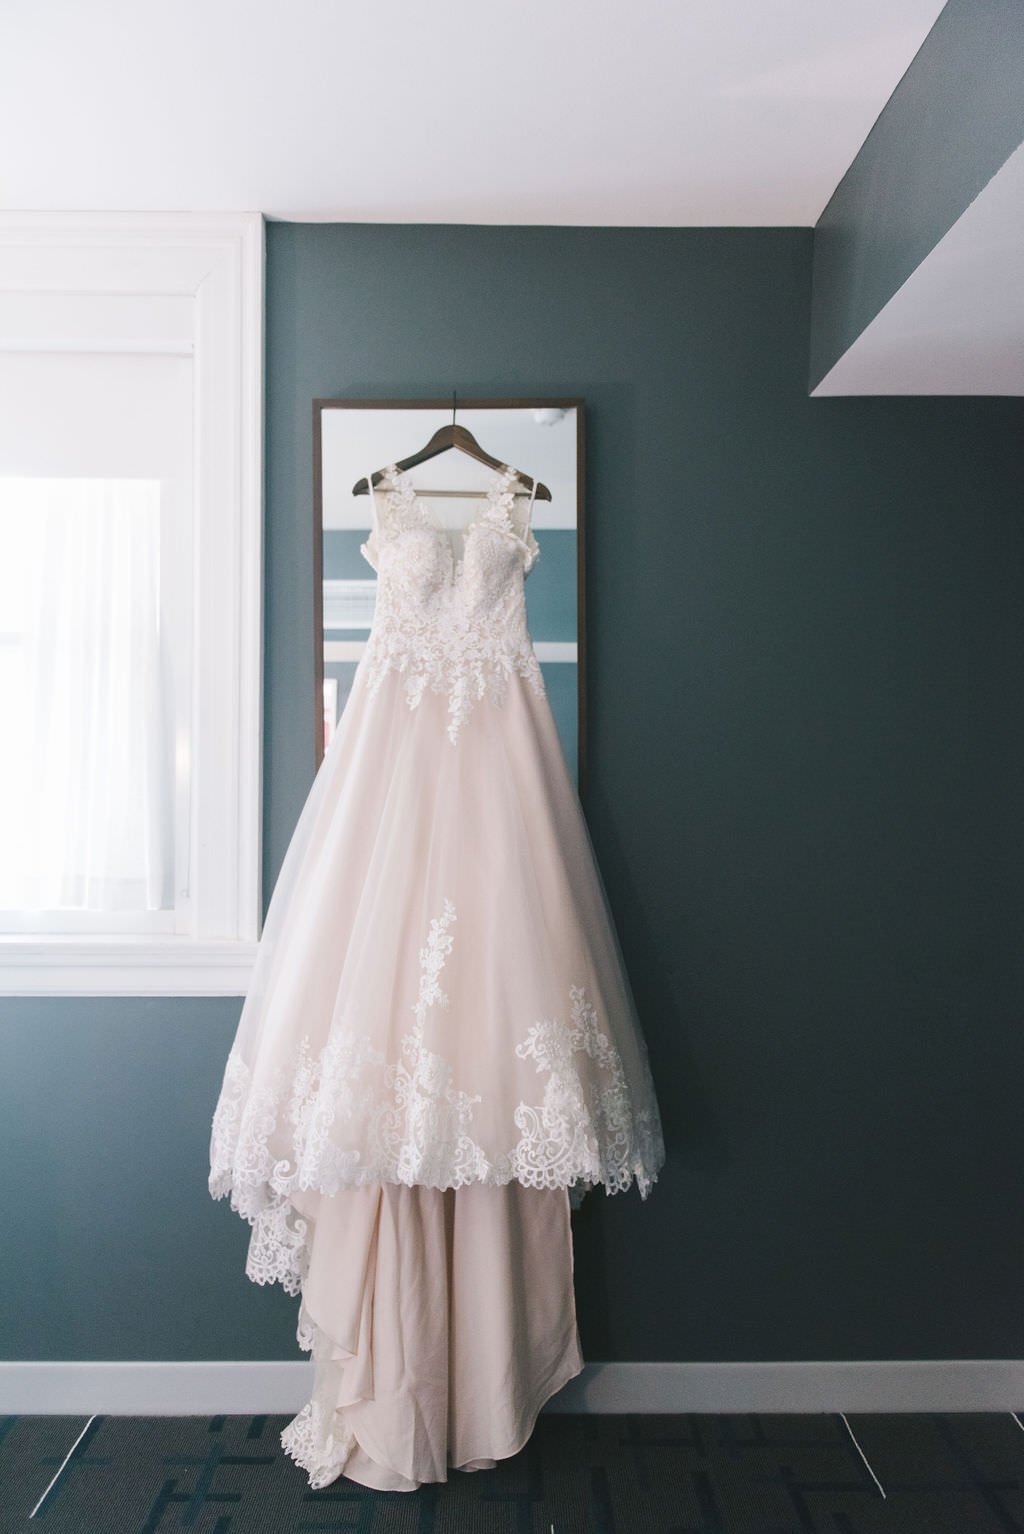 Modern Boho A Line Lace and Tulle Sweetheart Illusion Neckline with Straps Wedding Dress   Tampa Wedding Photographer Kera Photography